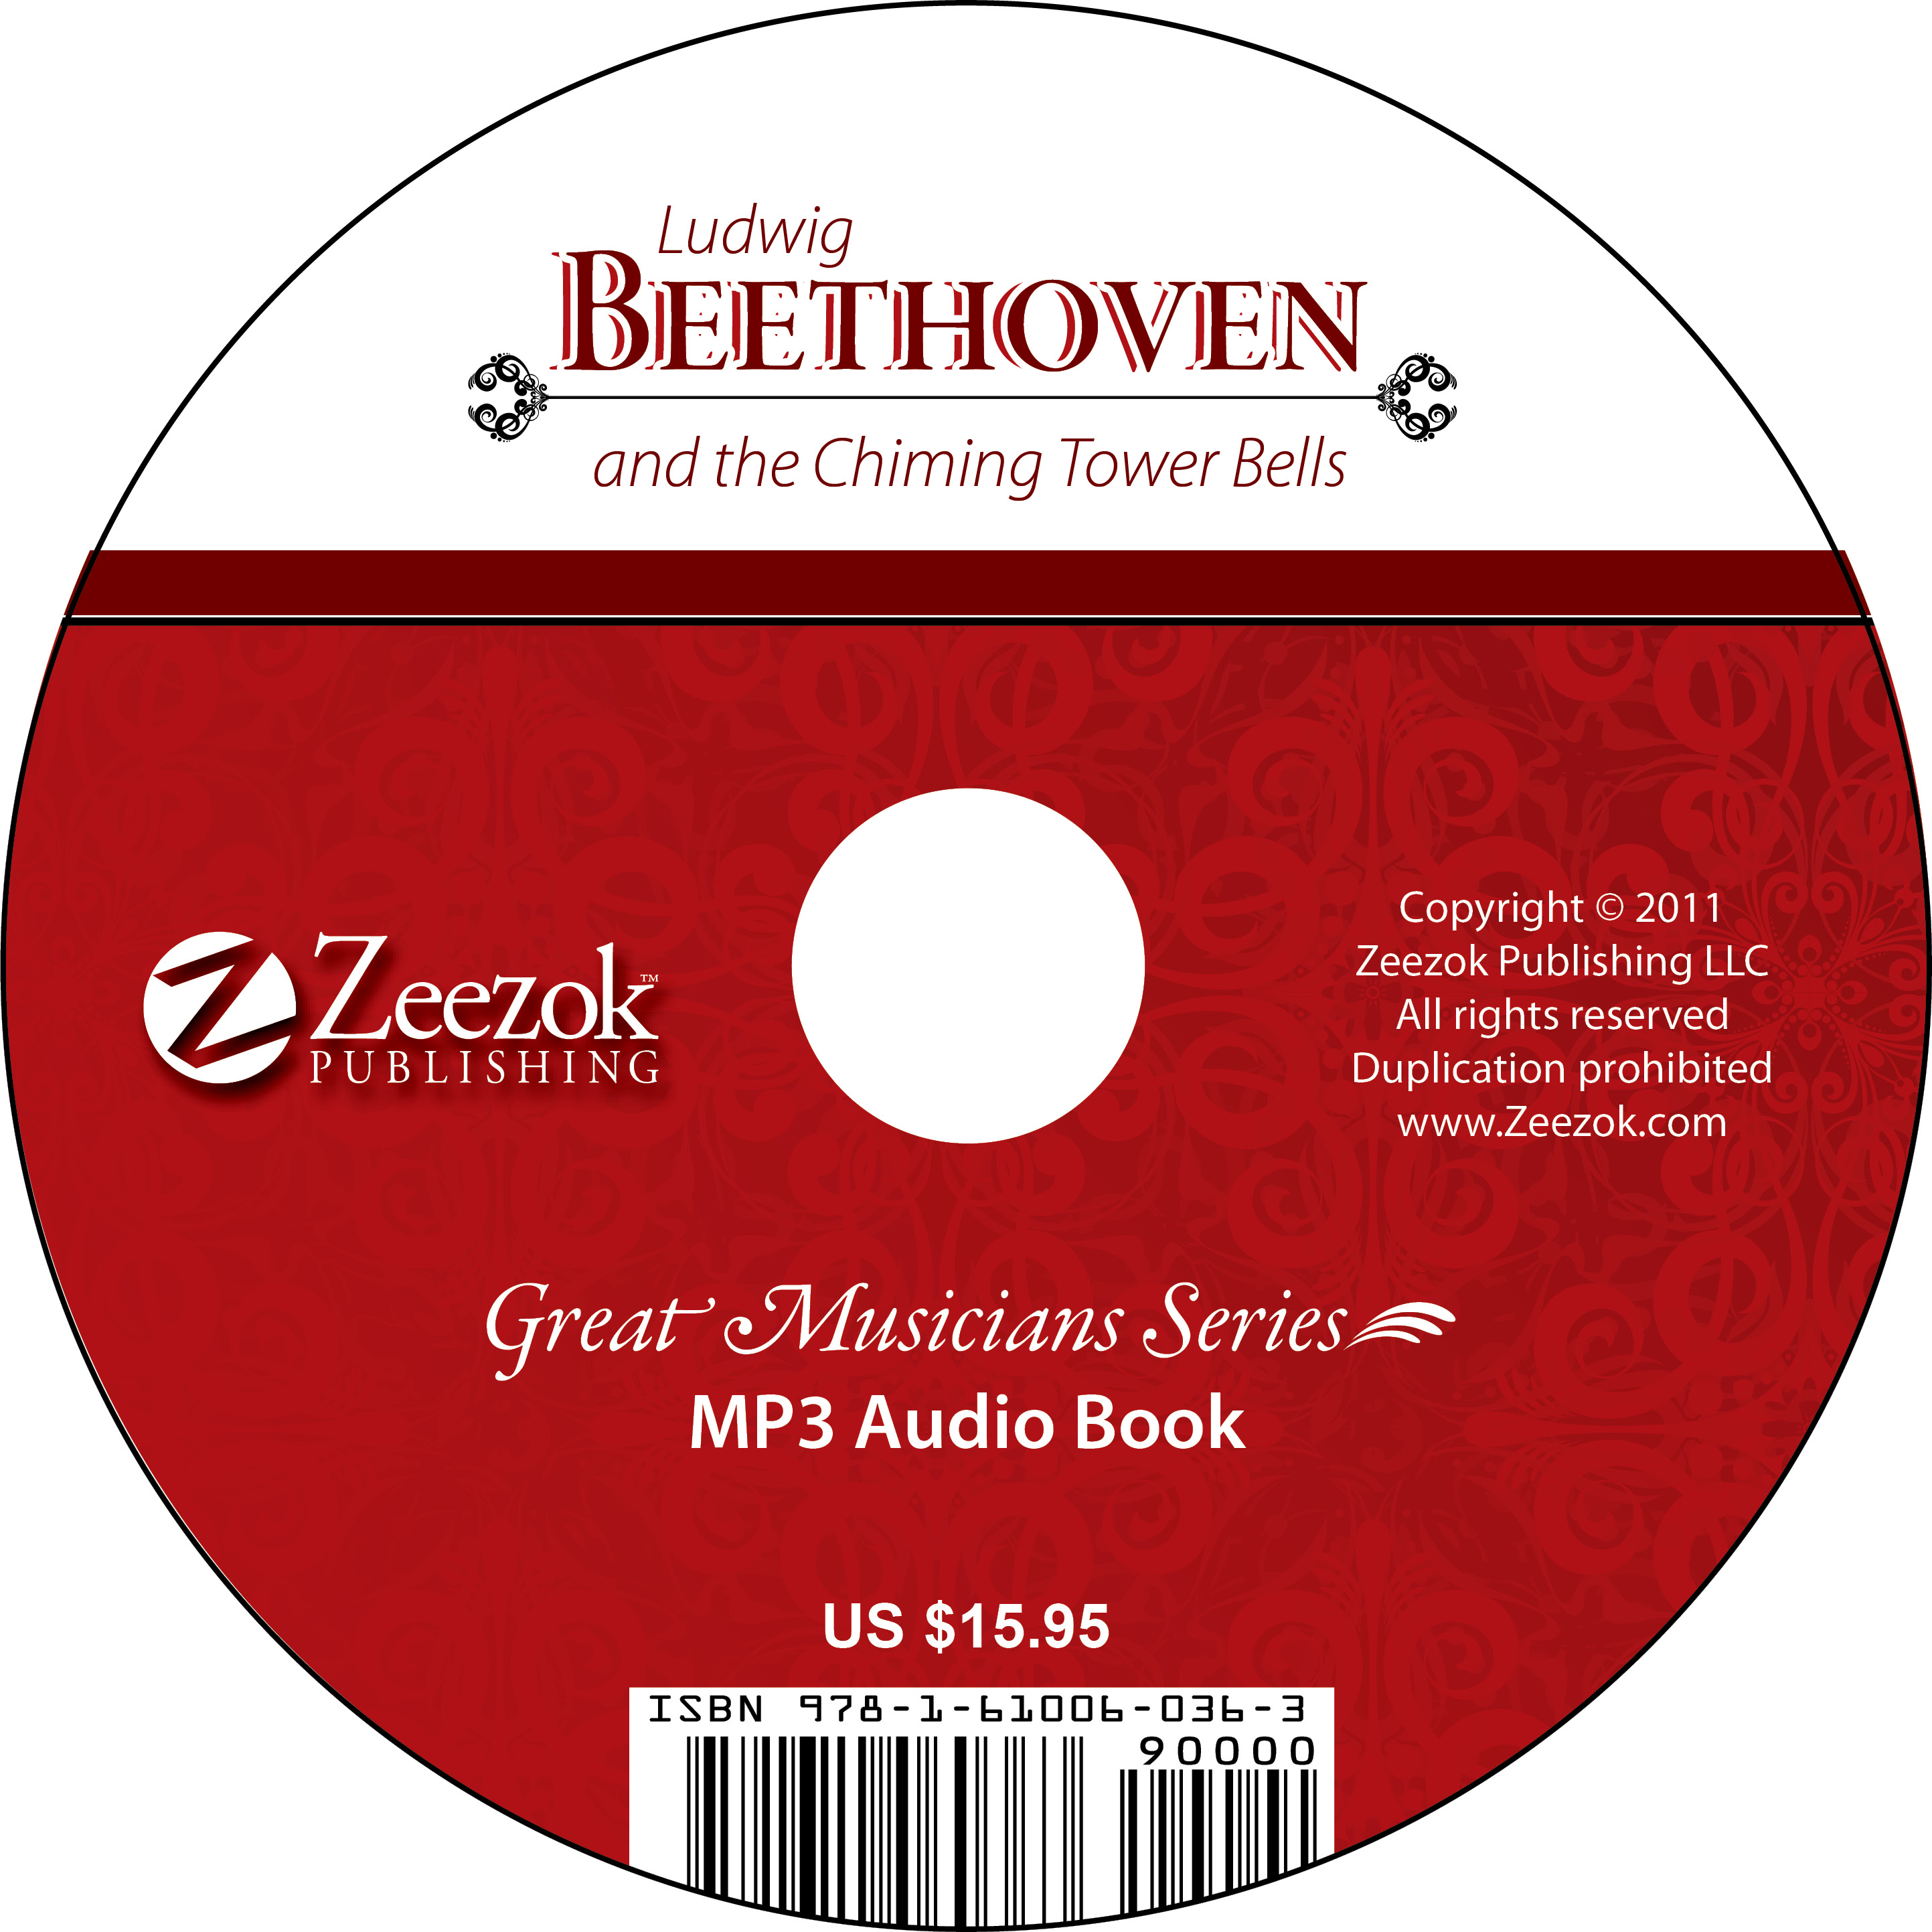 Ludwig Beethoven and the Chiming Tower Bells Audio Book on ... - photo#26